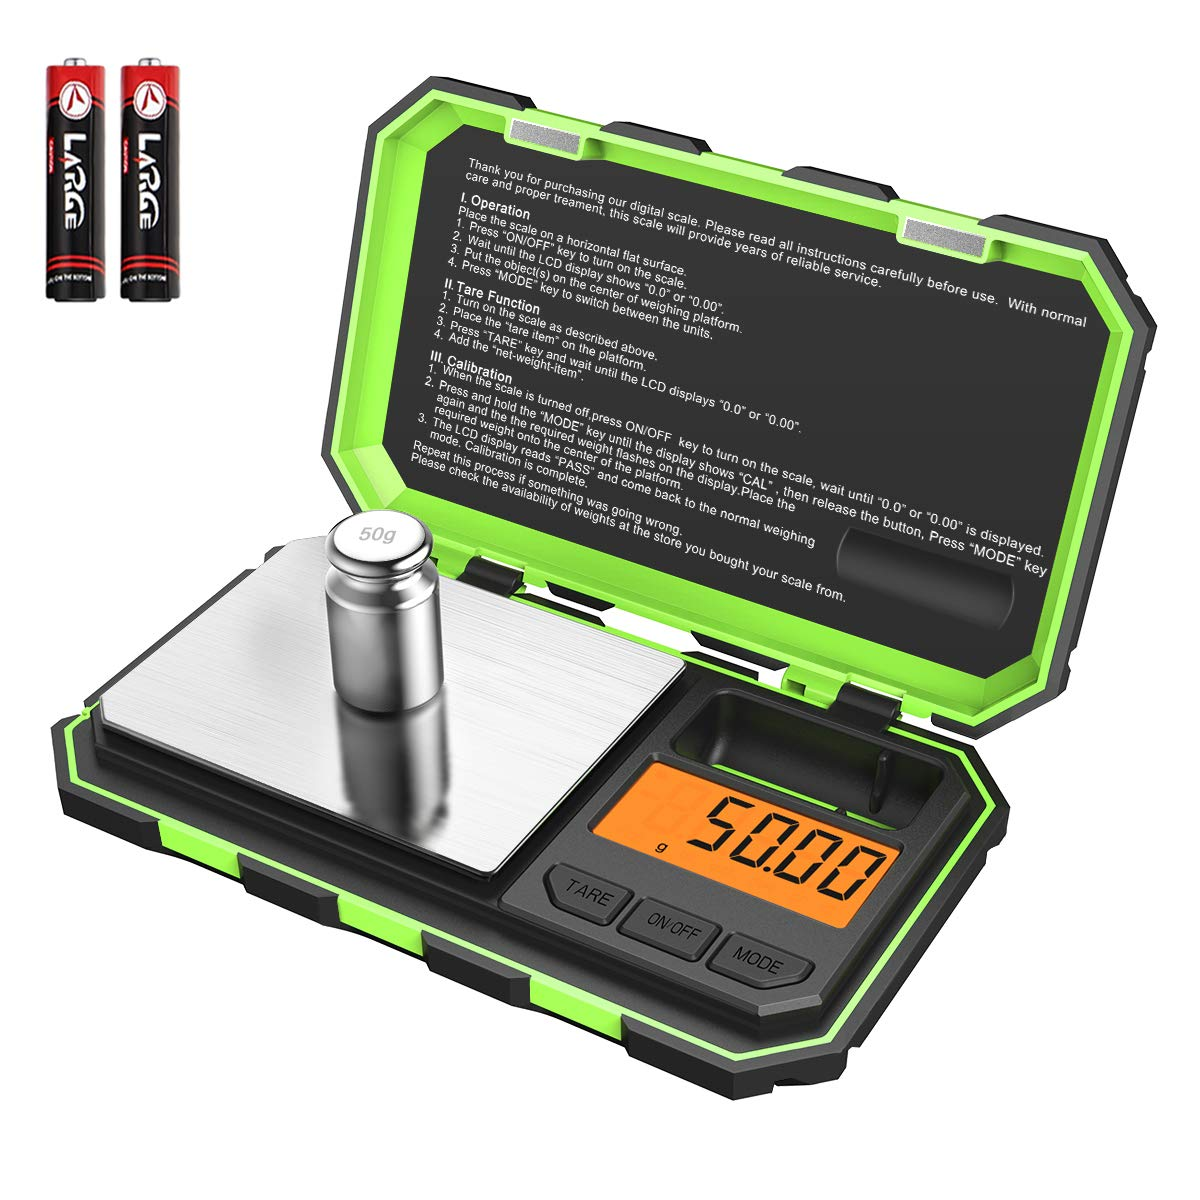 (New Version) Brifit Mini Digital Weighing Scale, 100g-0.01g Pocket Scale, Electronic Smart Scale with 50g calibration weight, Tare & Auto Off Function (Battery Included) 71oVn0vyRqL